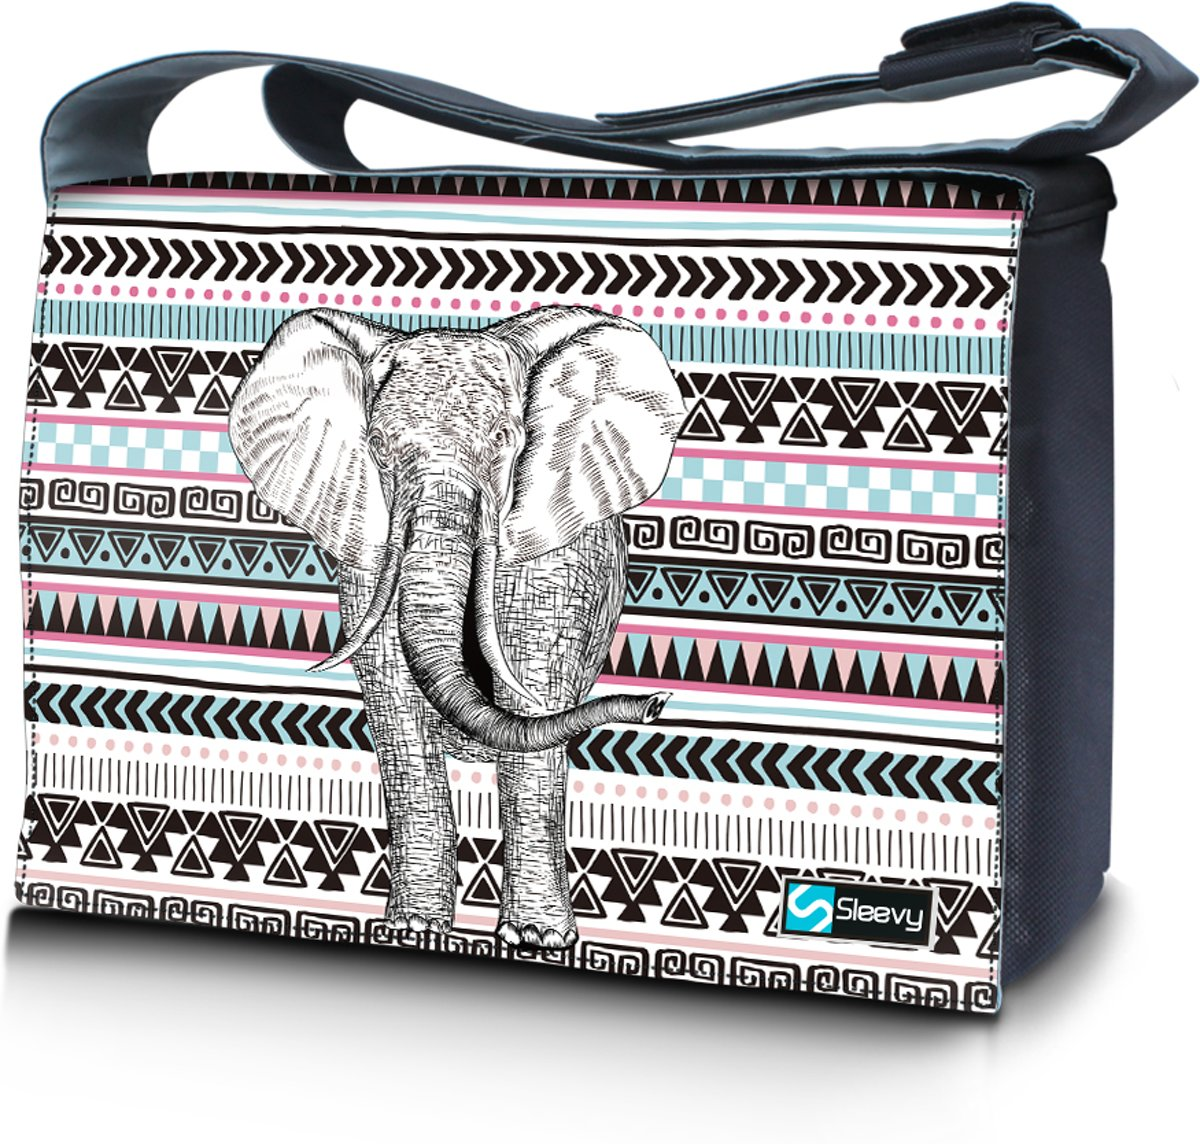 Messengertas / laptoptas 17,3 inch olifant en patroon - Sleevy - reistas - schoudertas - schooltas - heren dames tas - tas laptop